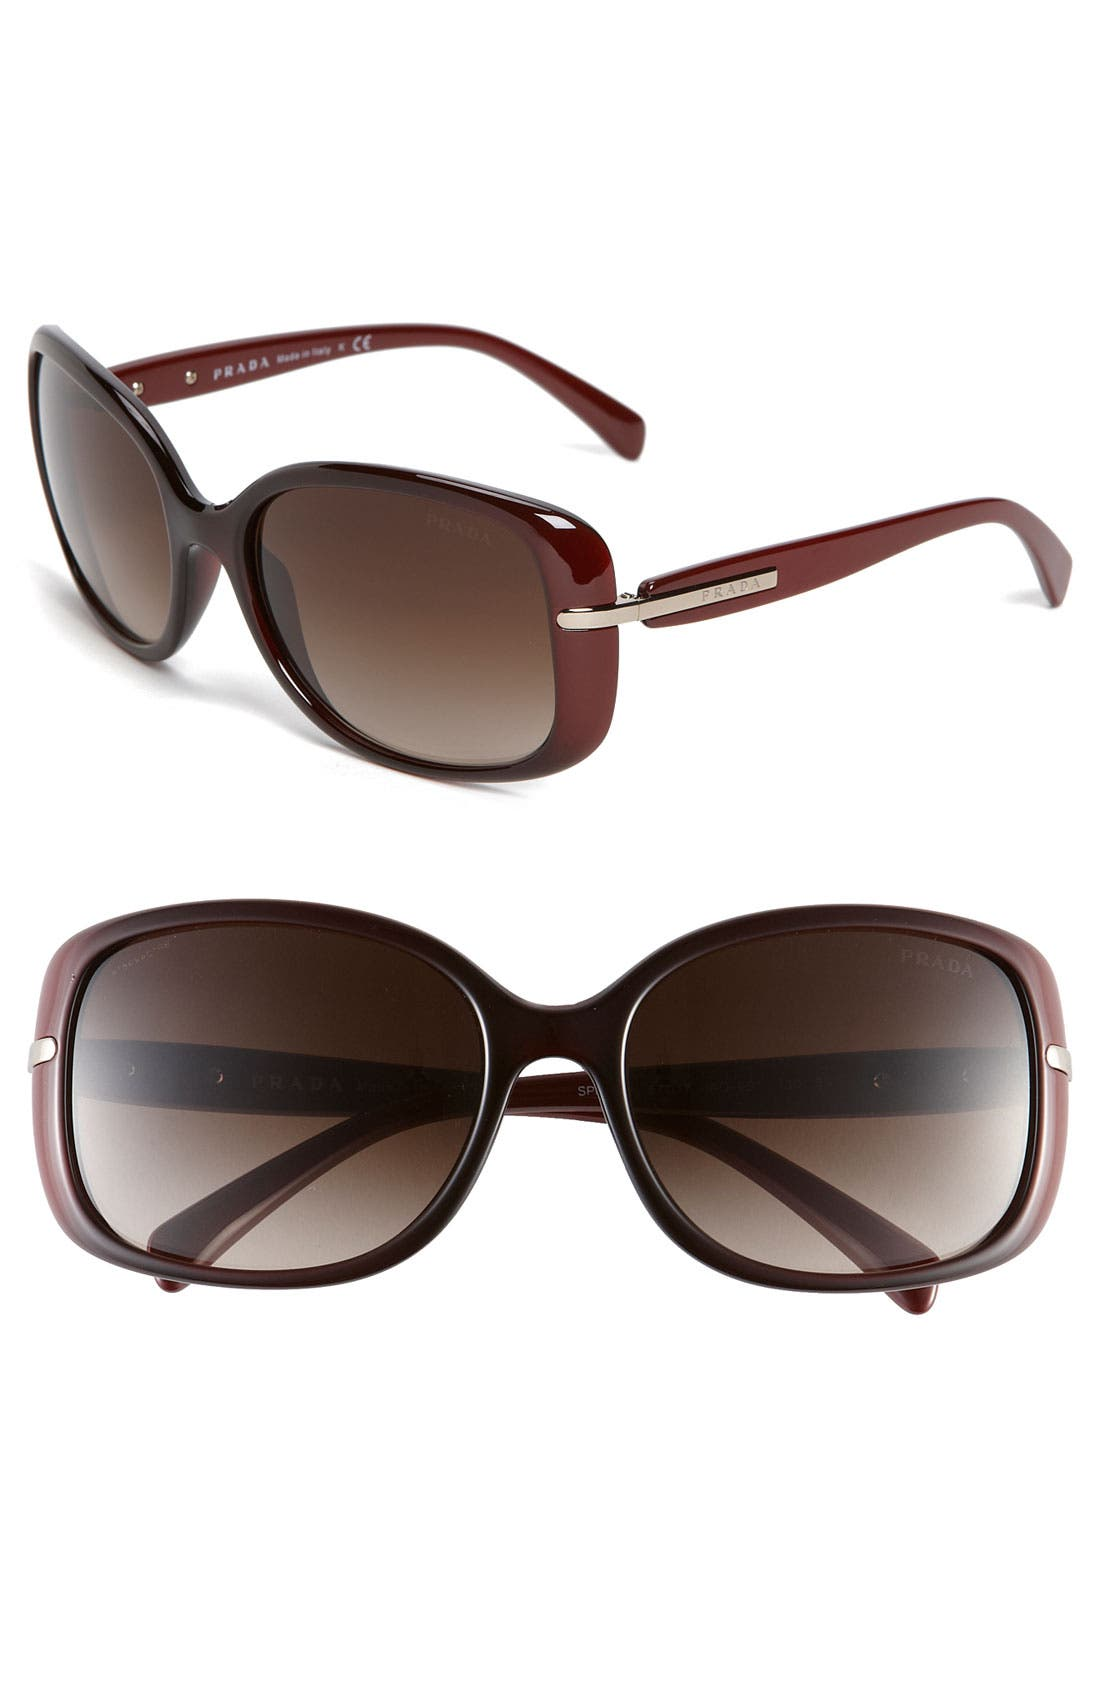 Alternate Image 1 Selected - Prada 57mm Rectangular Sunglasses